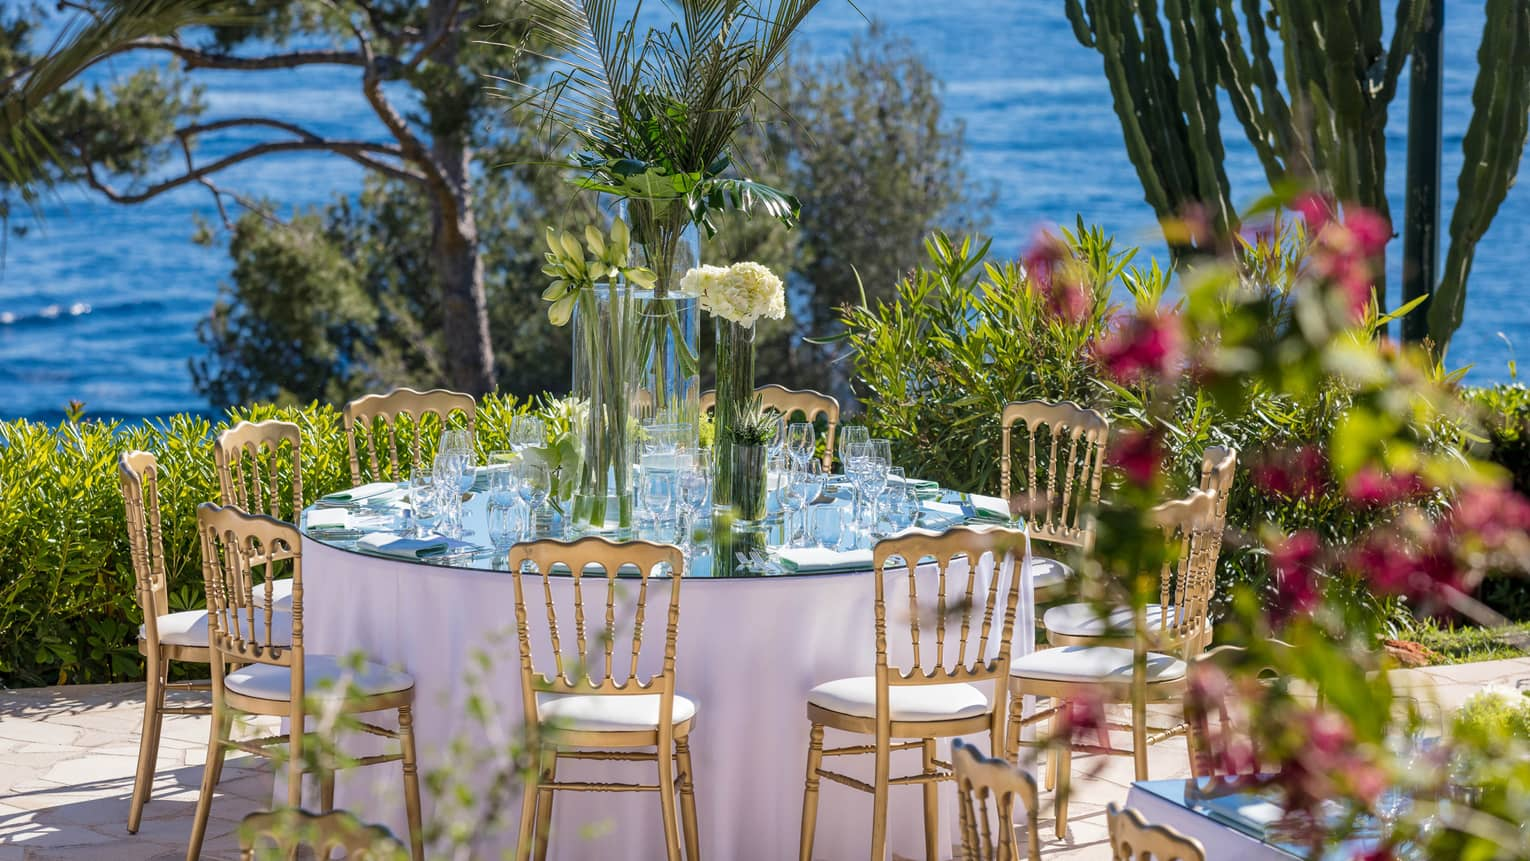 Small round outdoor wedding dining table on patio by sea